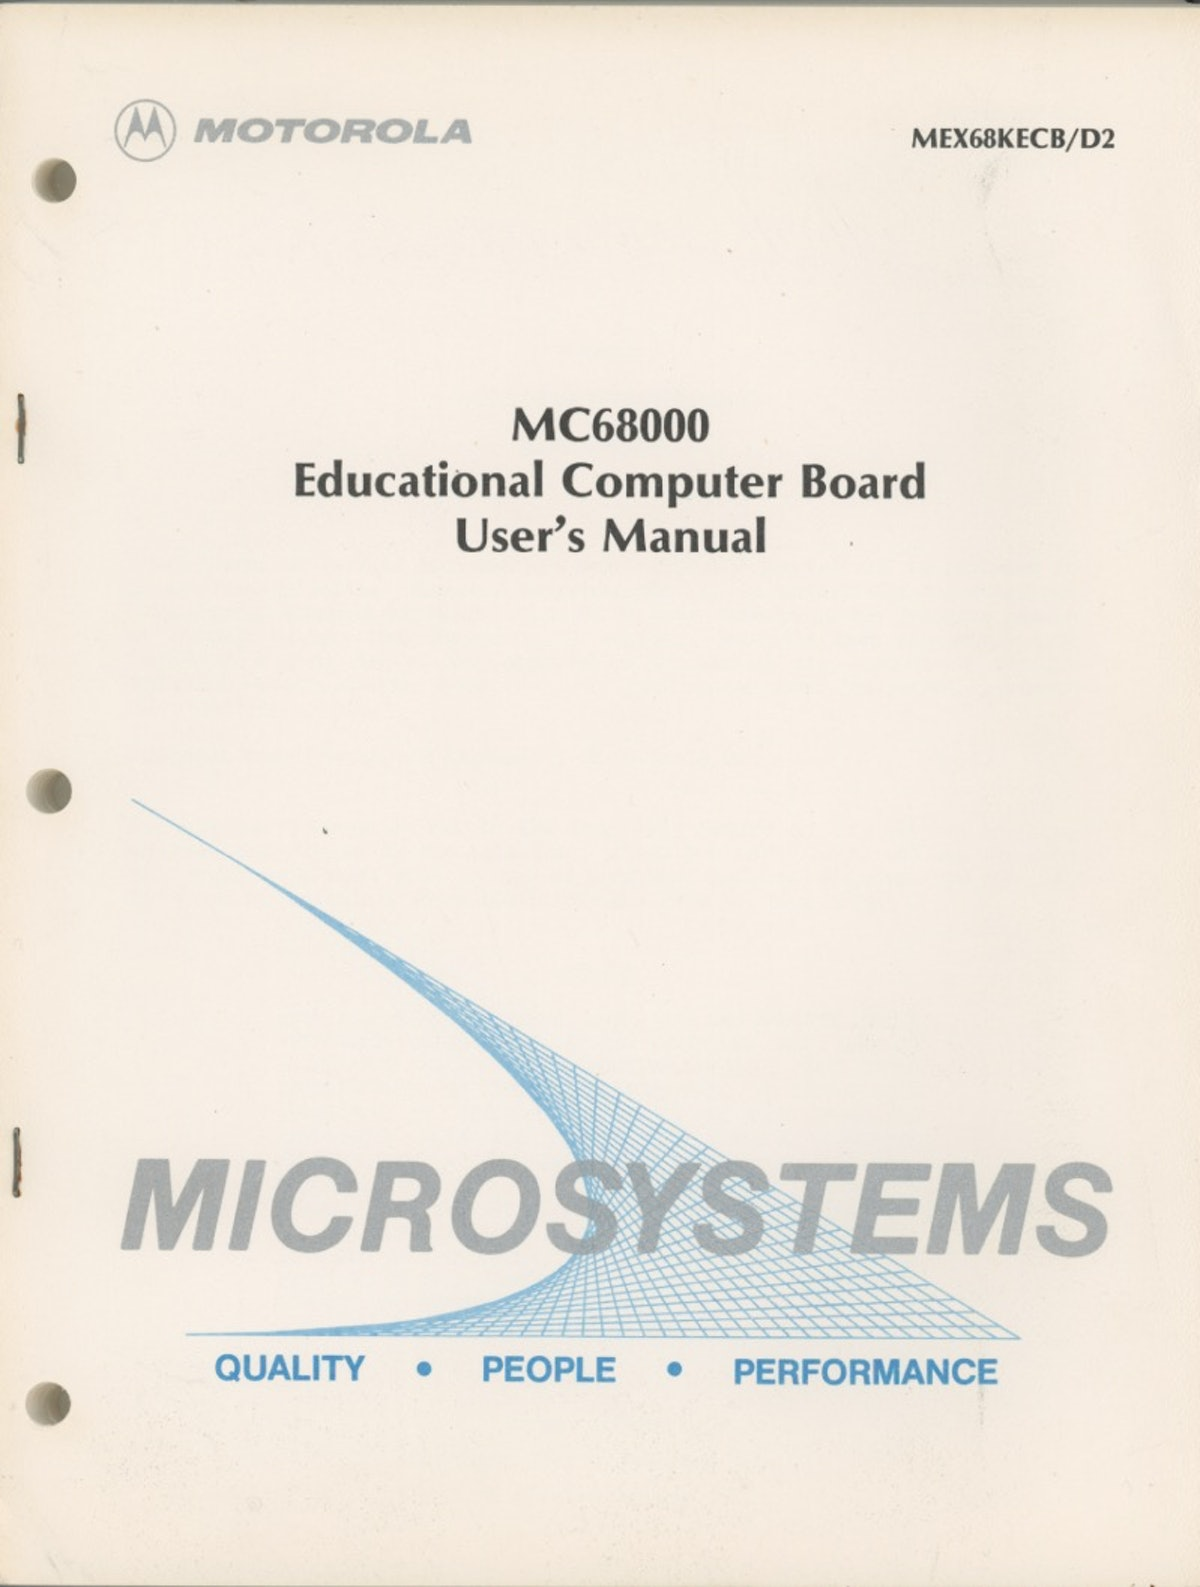 MC68000 Educational Computer Board User's Manual